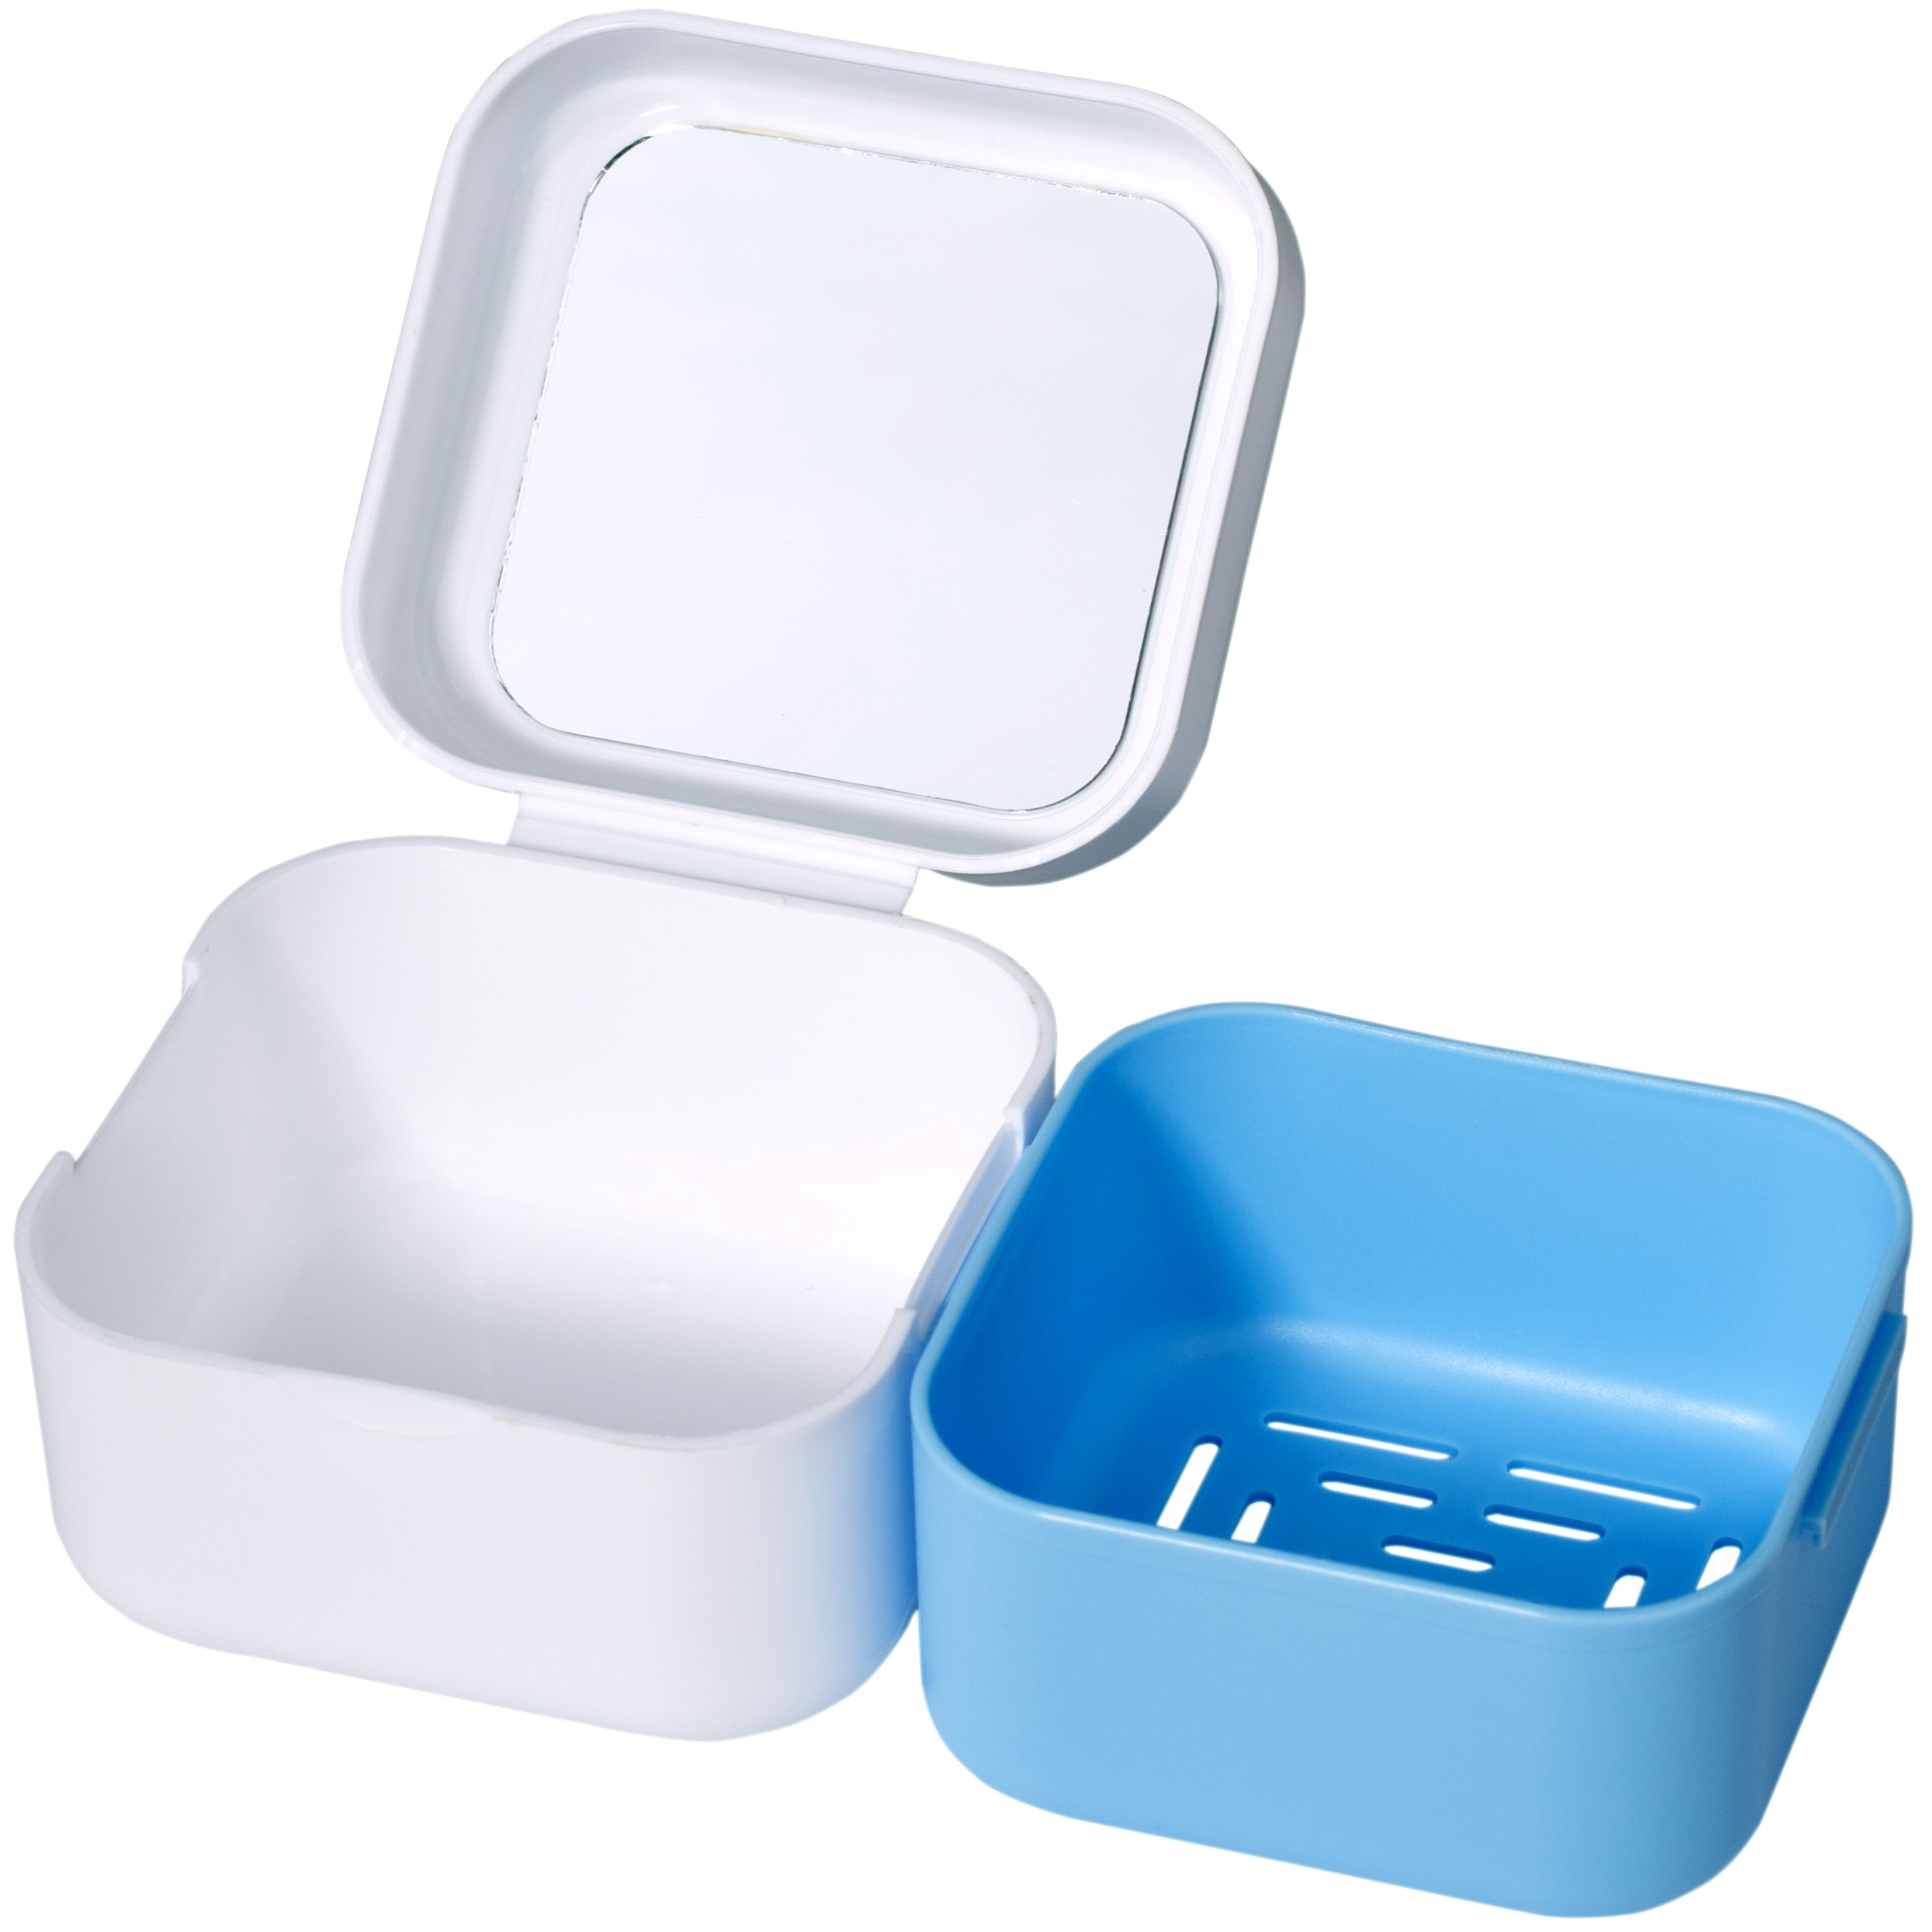 Denture Case with Strainer - Medokare Denture Cup with Lid and Mirror, Dentures Box, Dental Retainer Container, Denture Bath Cleaning Soaking Cup, Mouth Guard Night Gum Shield Travel Storage Case